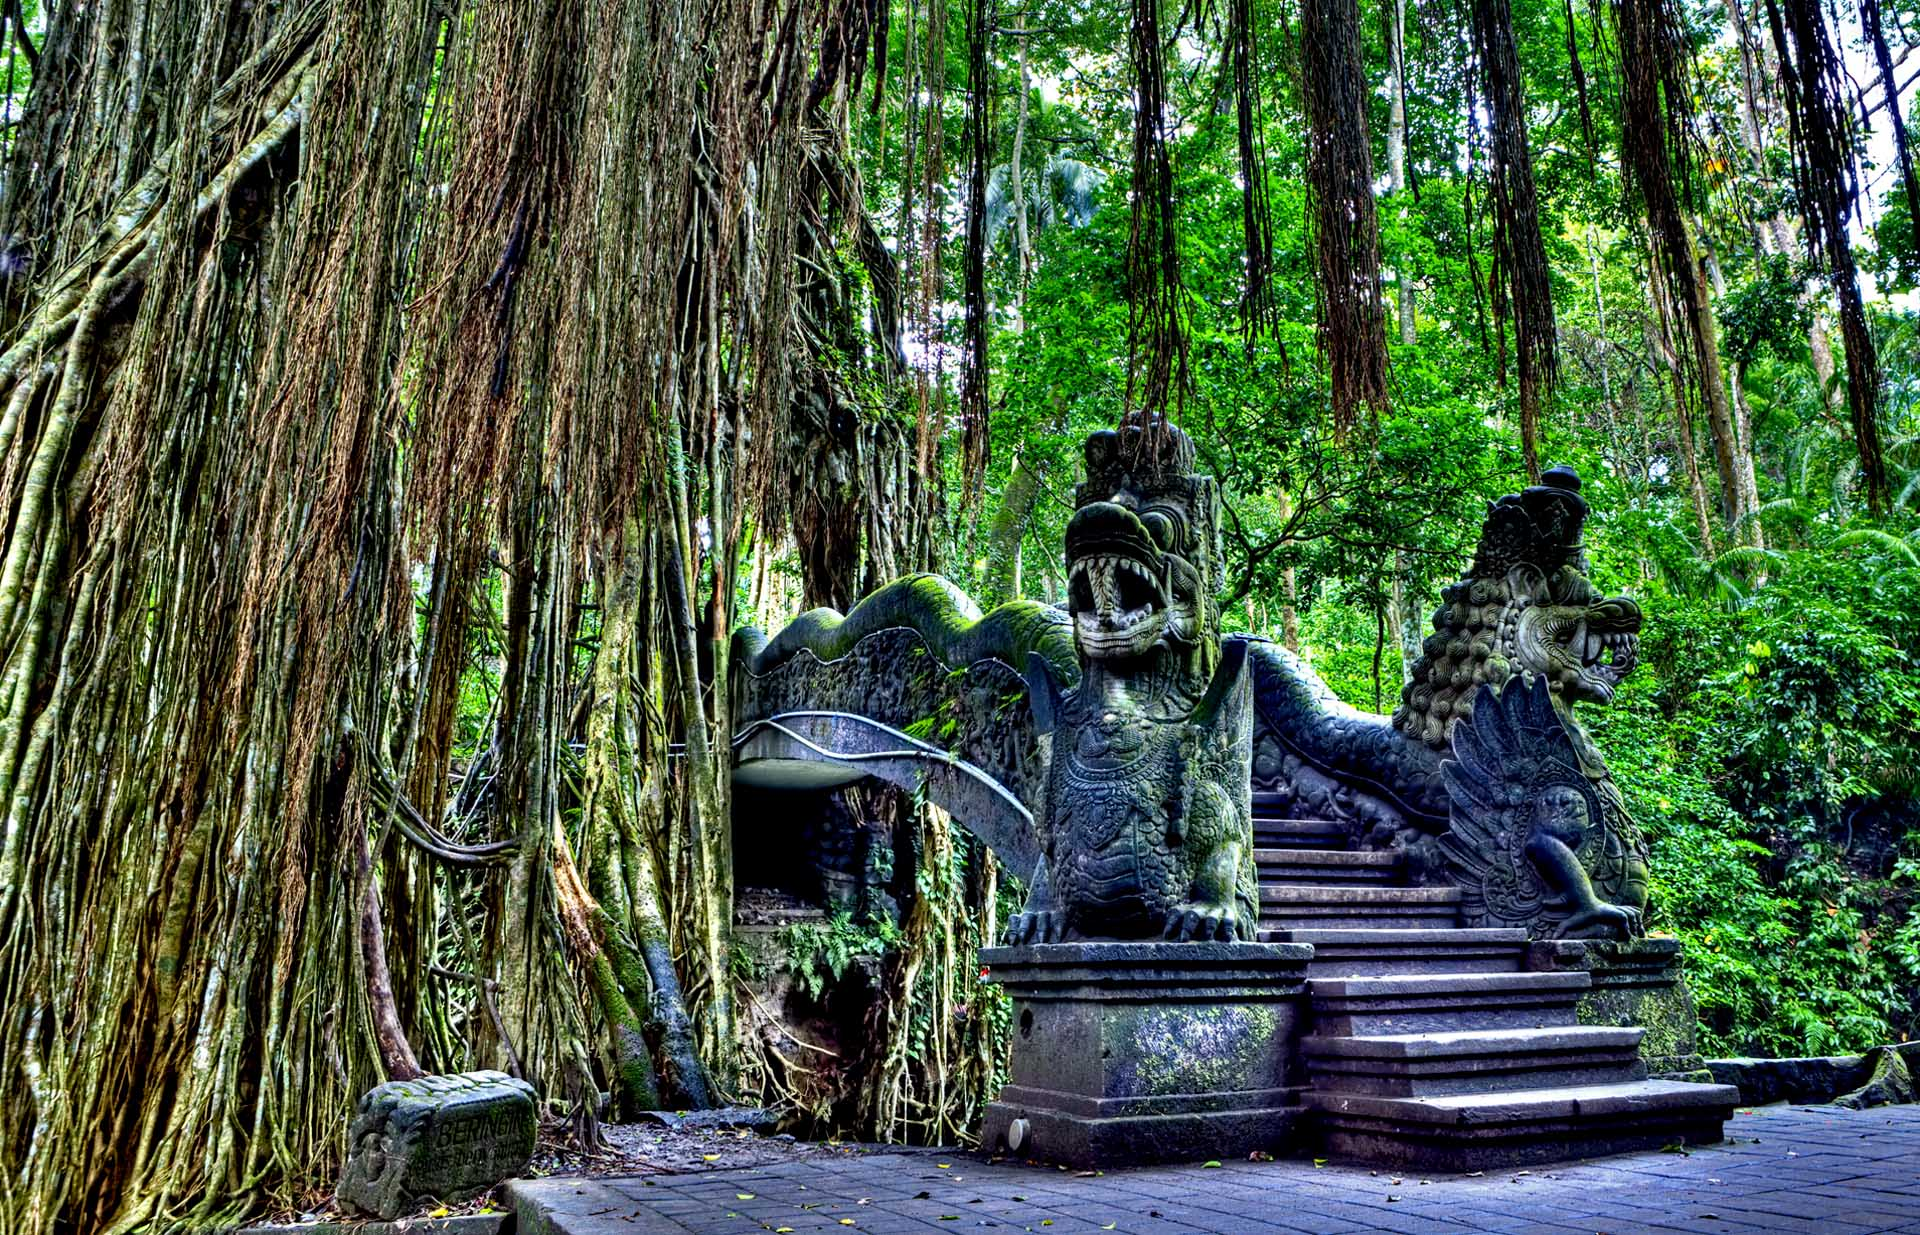 SEE & DO: UBUD MONKEY FOREST